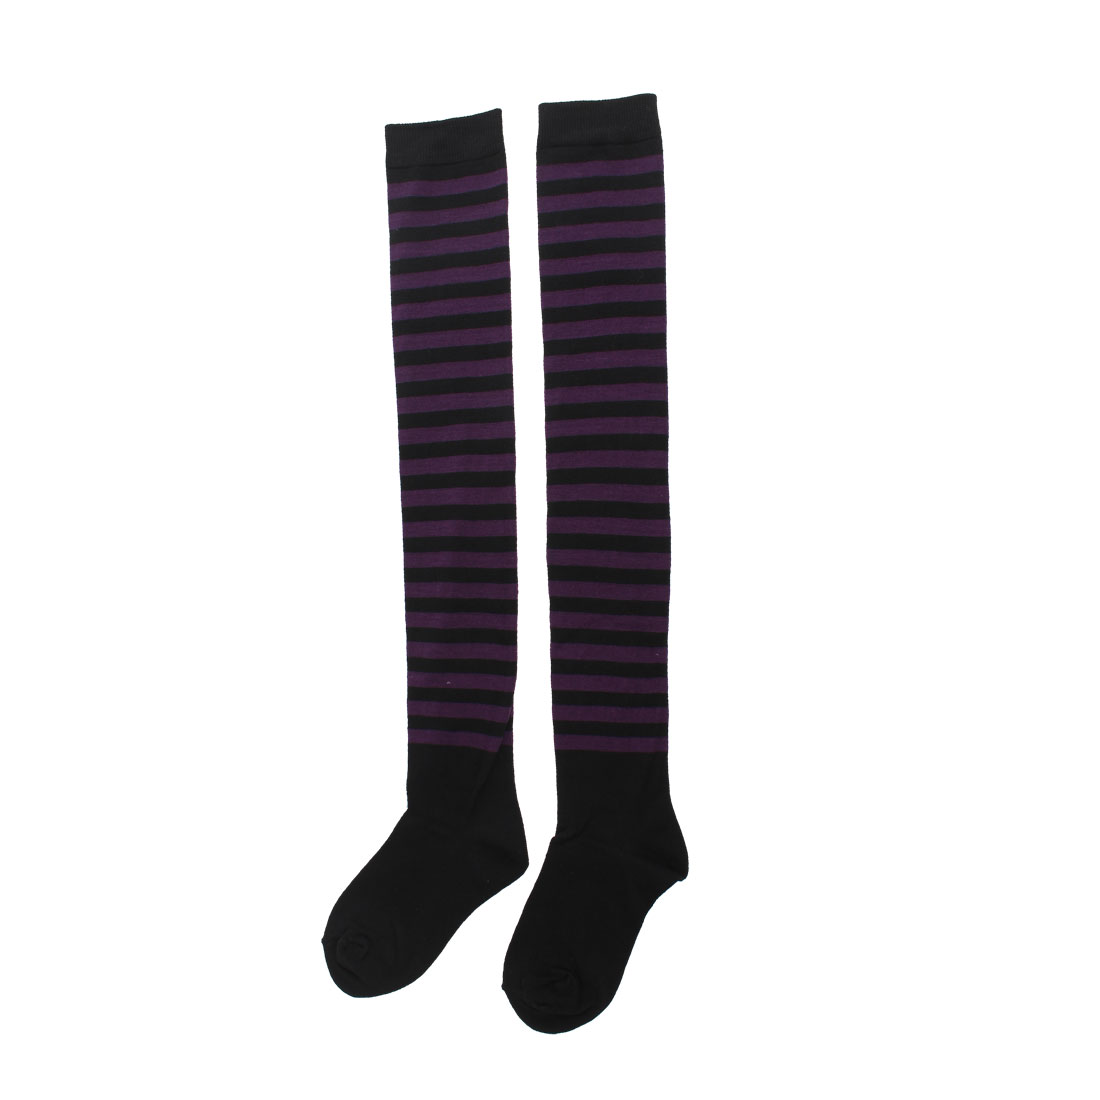 Women Knee High Two Tone Striped Knitted Socks 3-pack